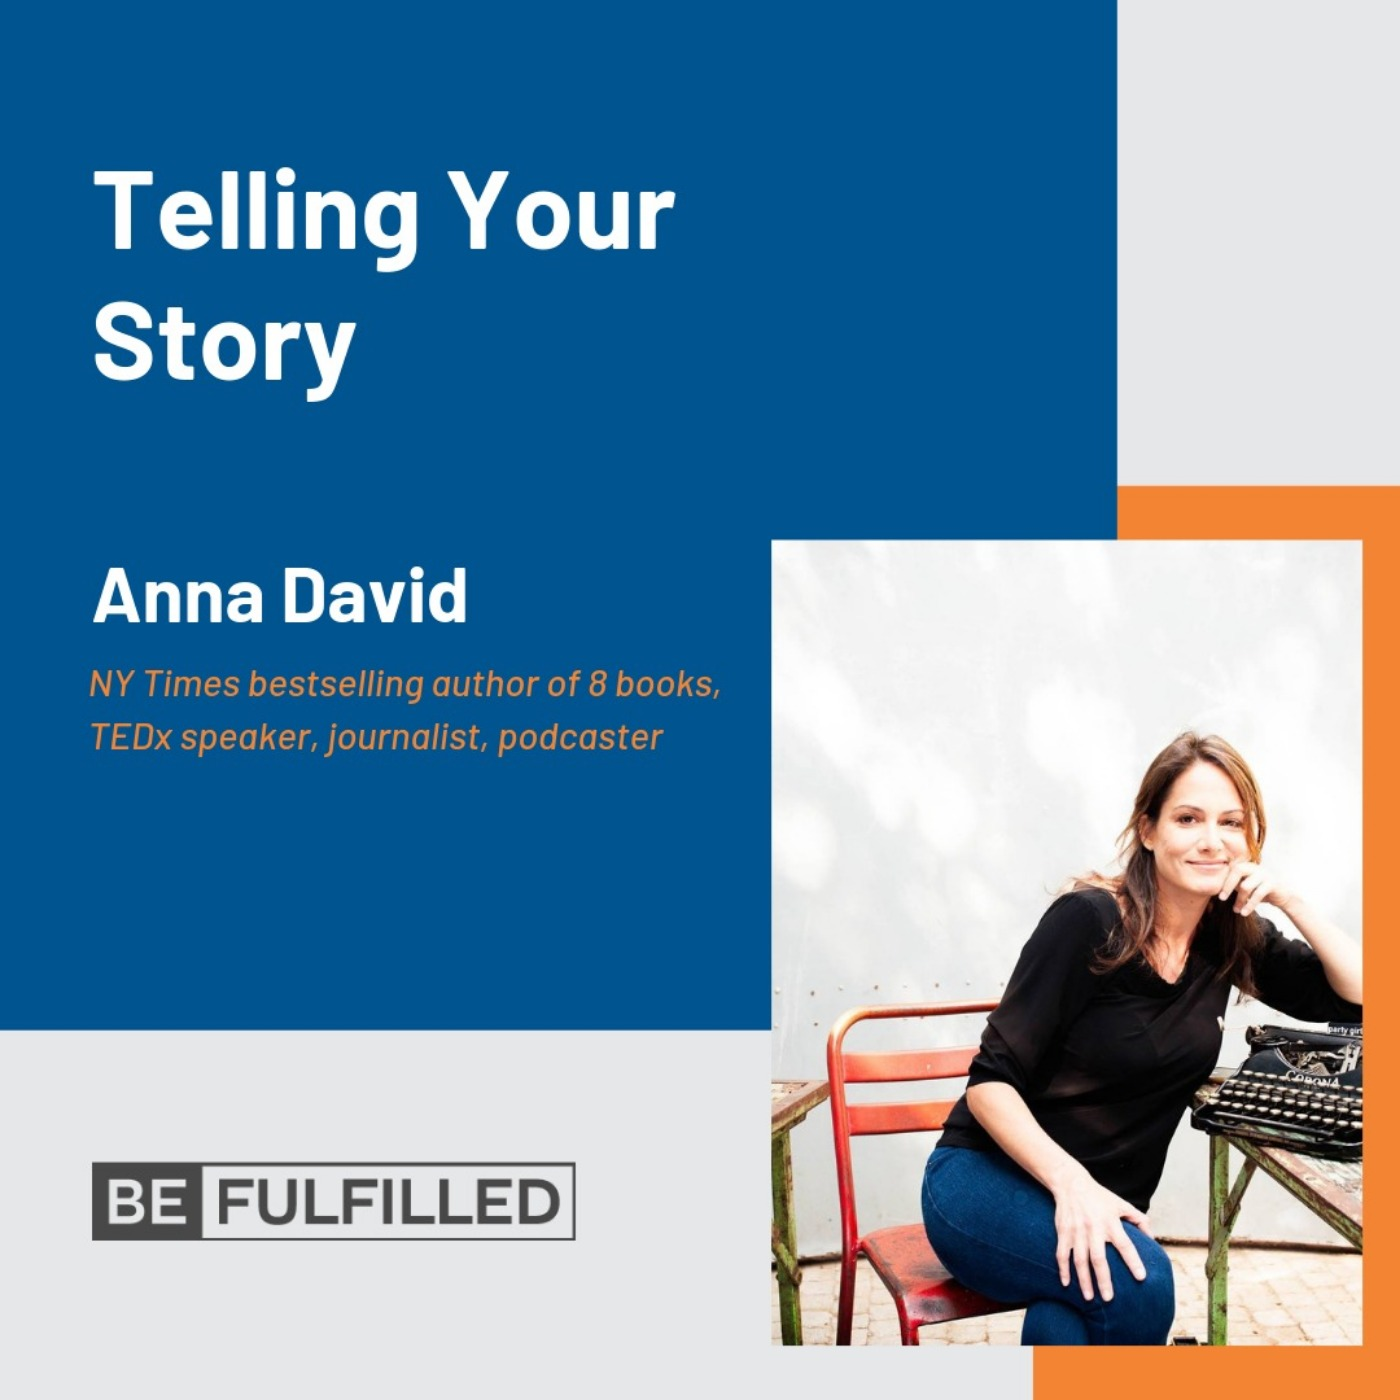 Telling Your Story - Anna David